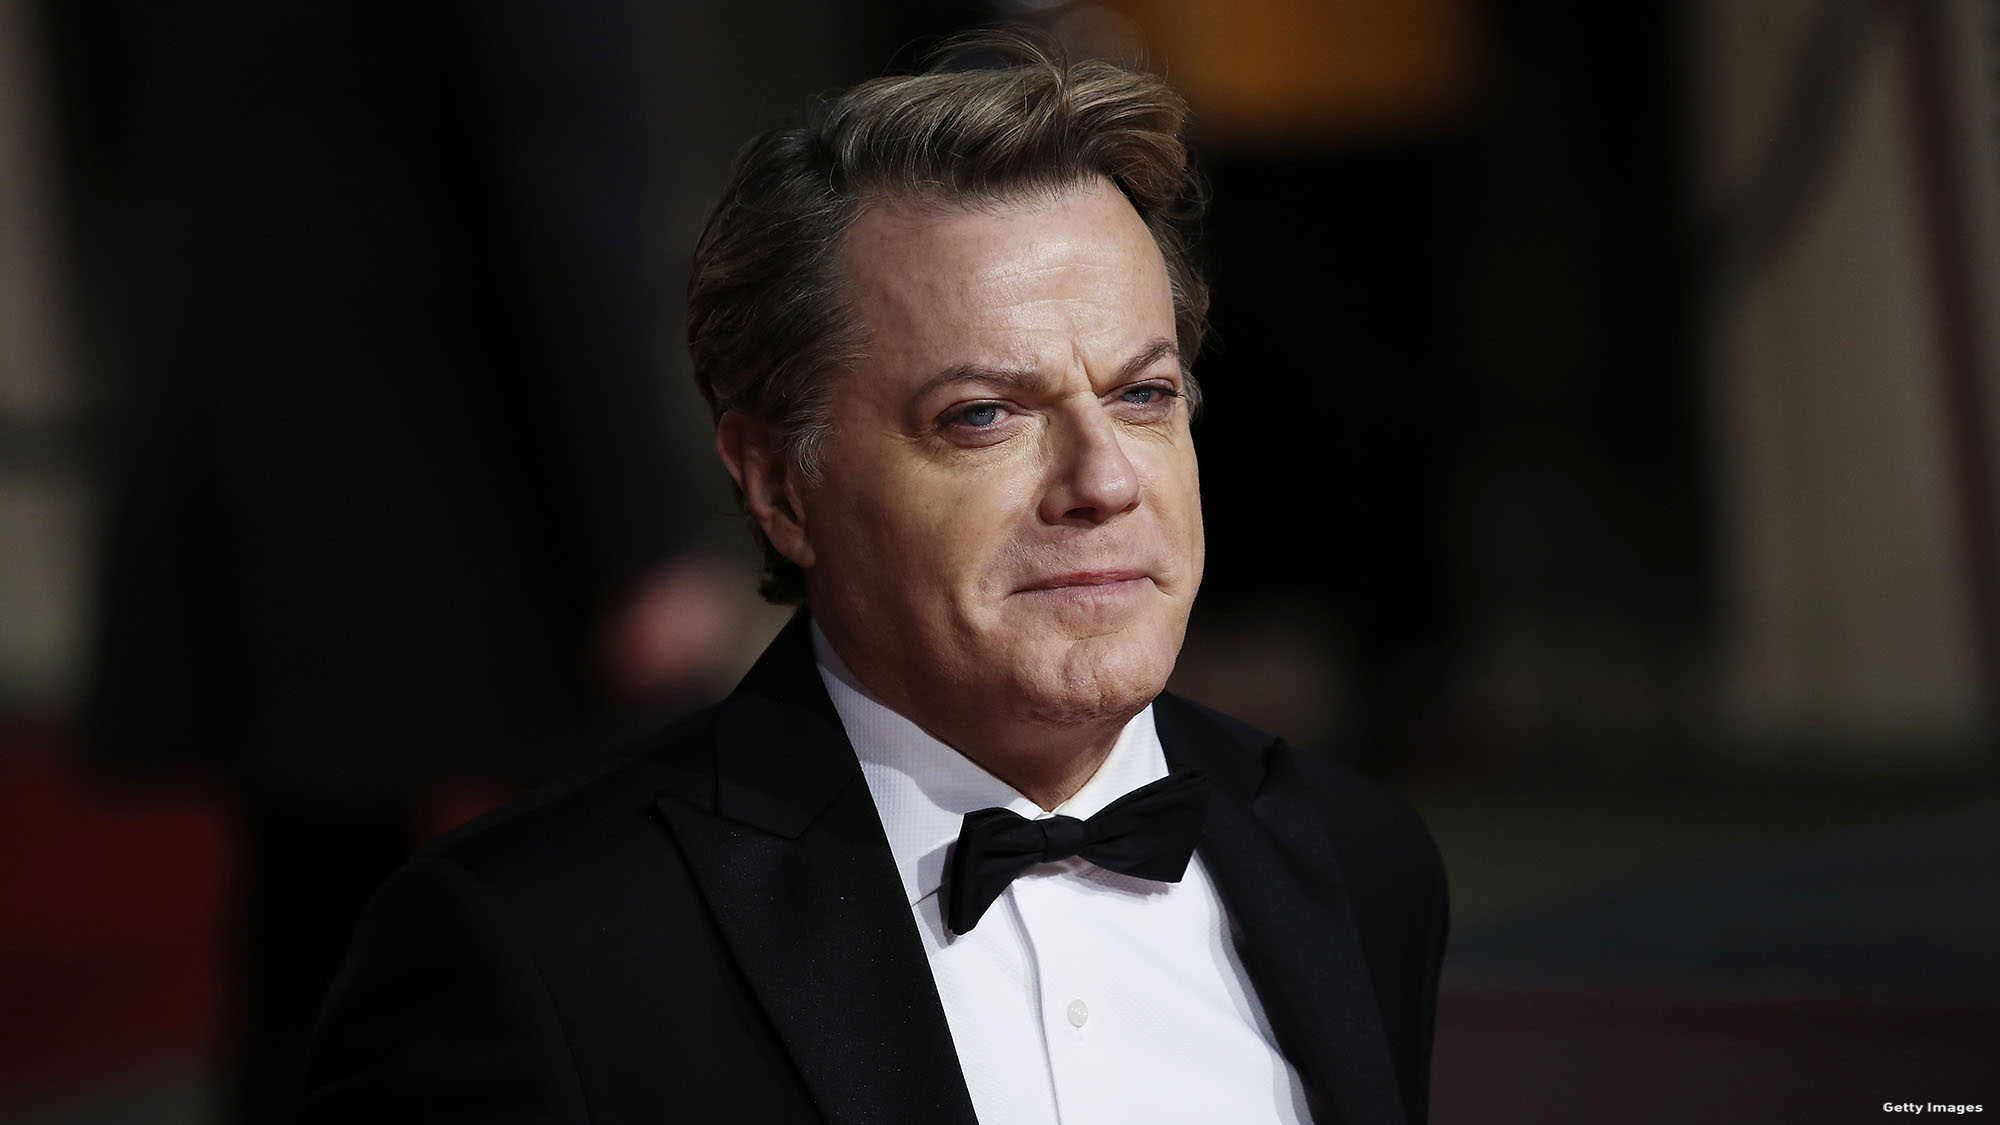 Eddie Izzard: Believe Me: A Memoir of Love, Death, and Jazz Chickens